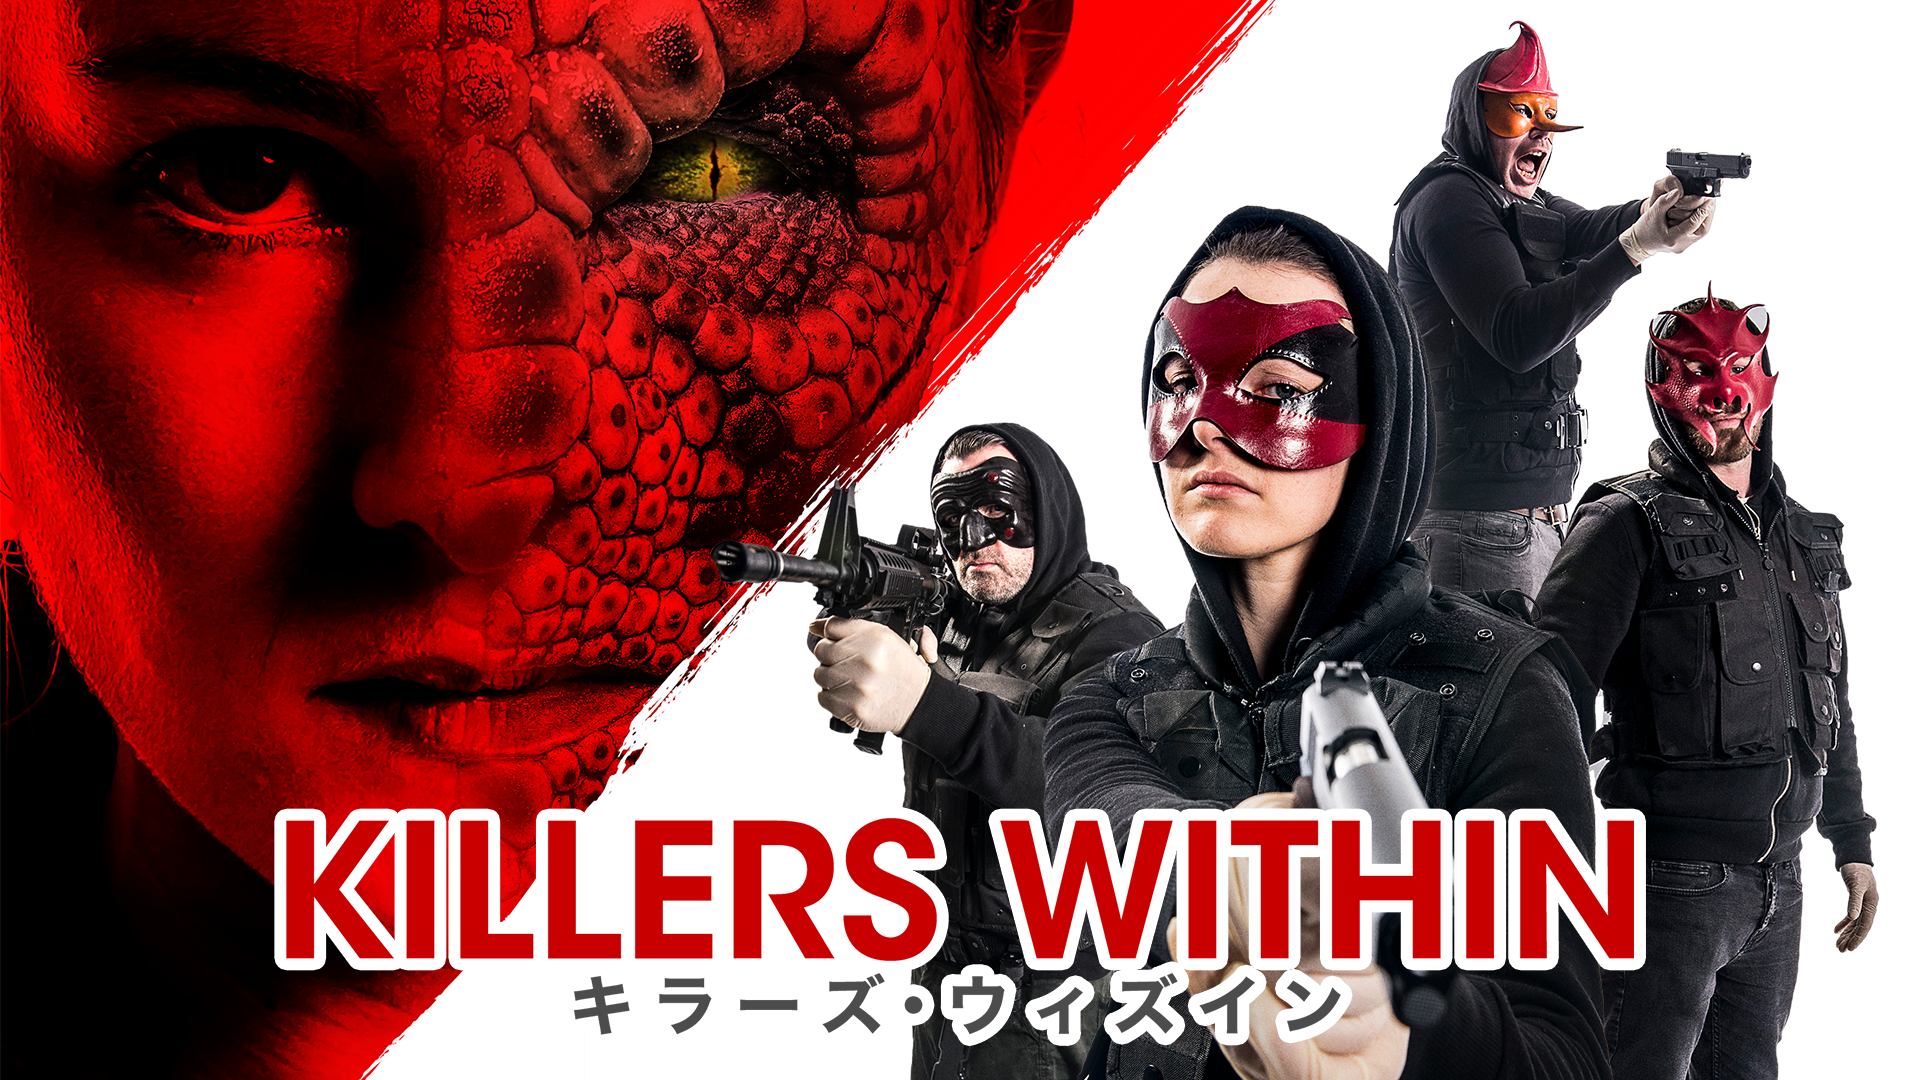 KILLERS WITHIN/キラーズ・ウィズイン動画フル